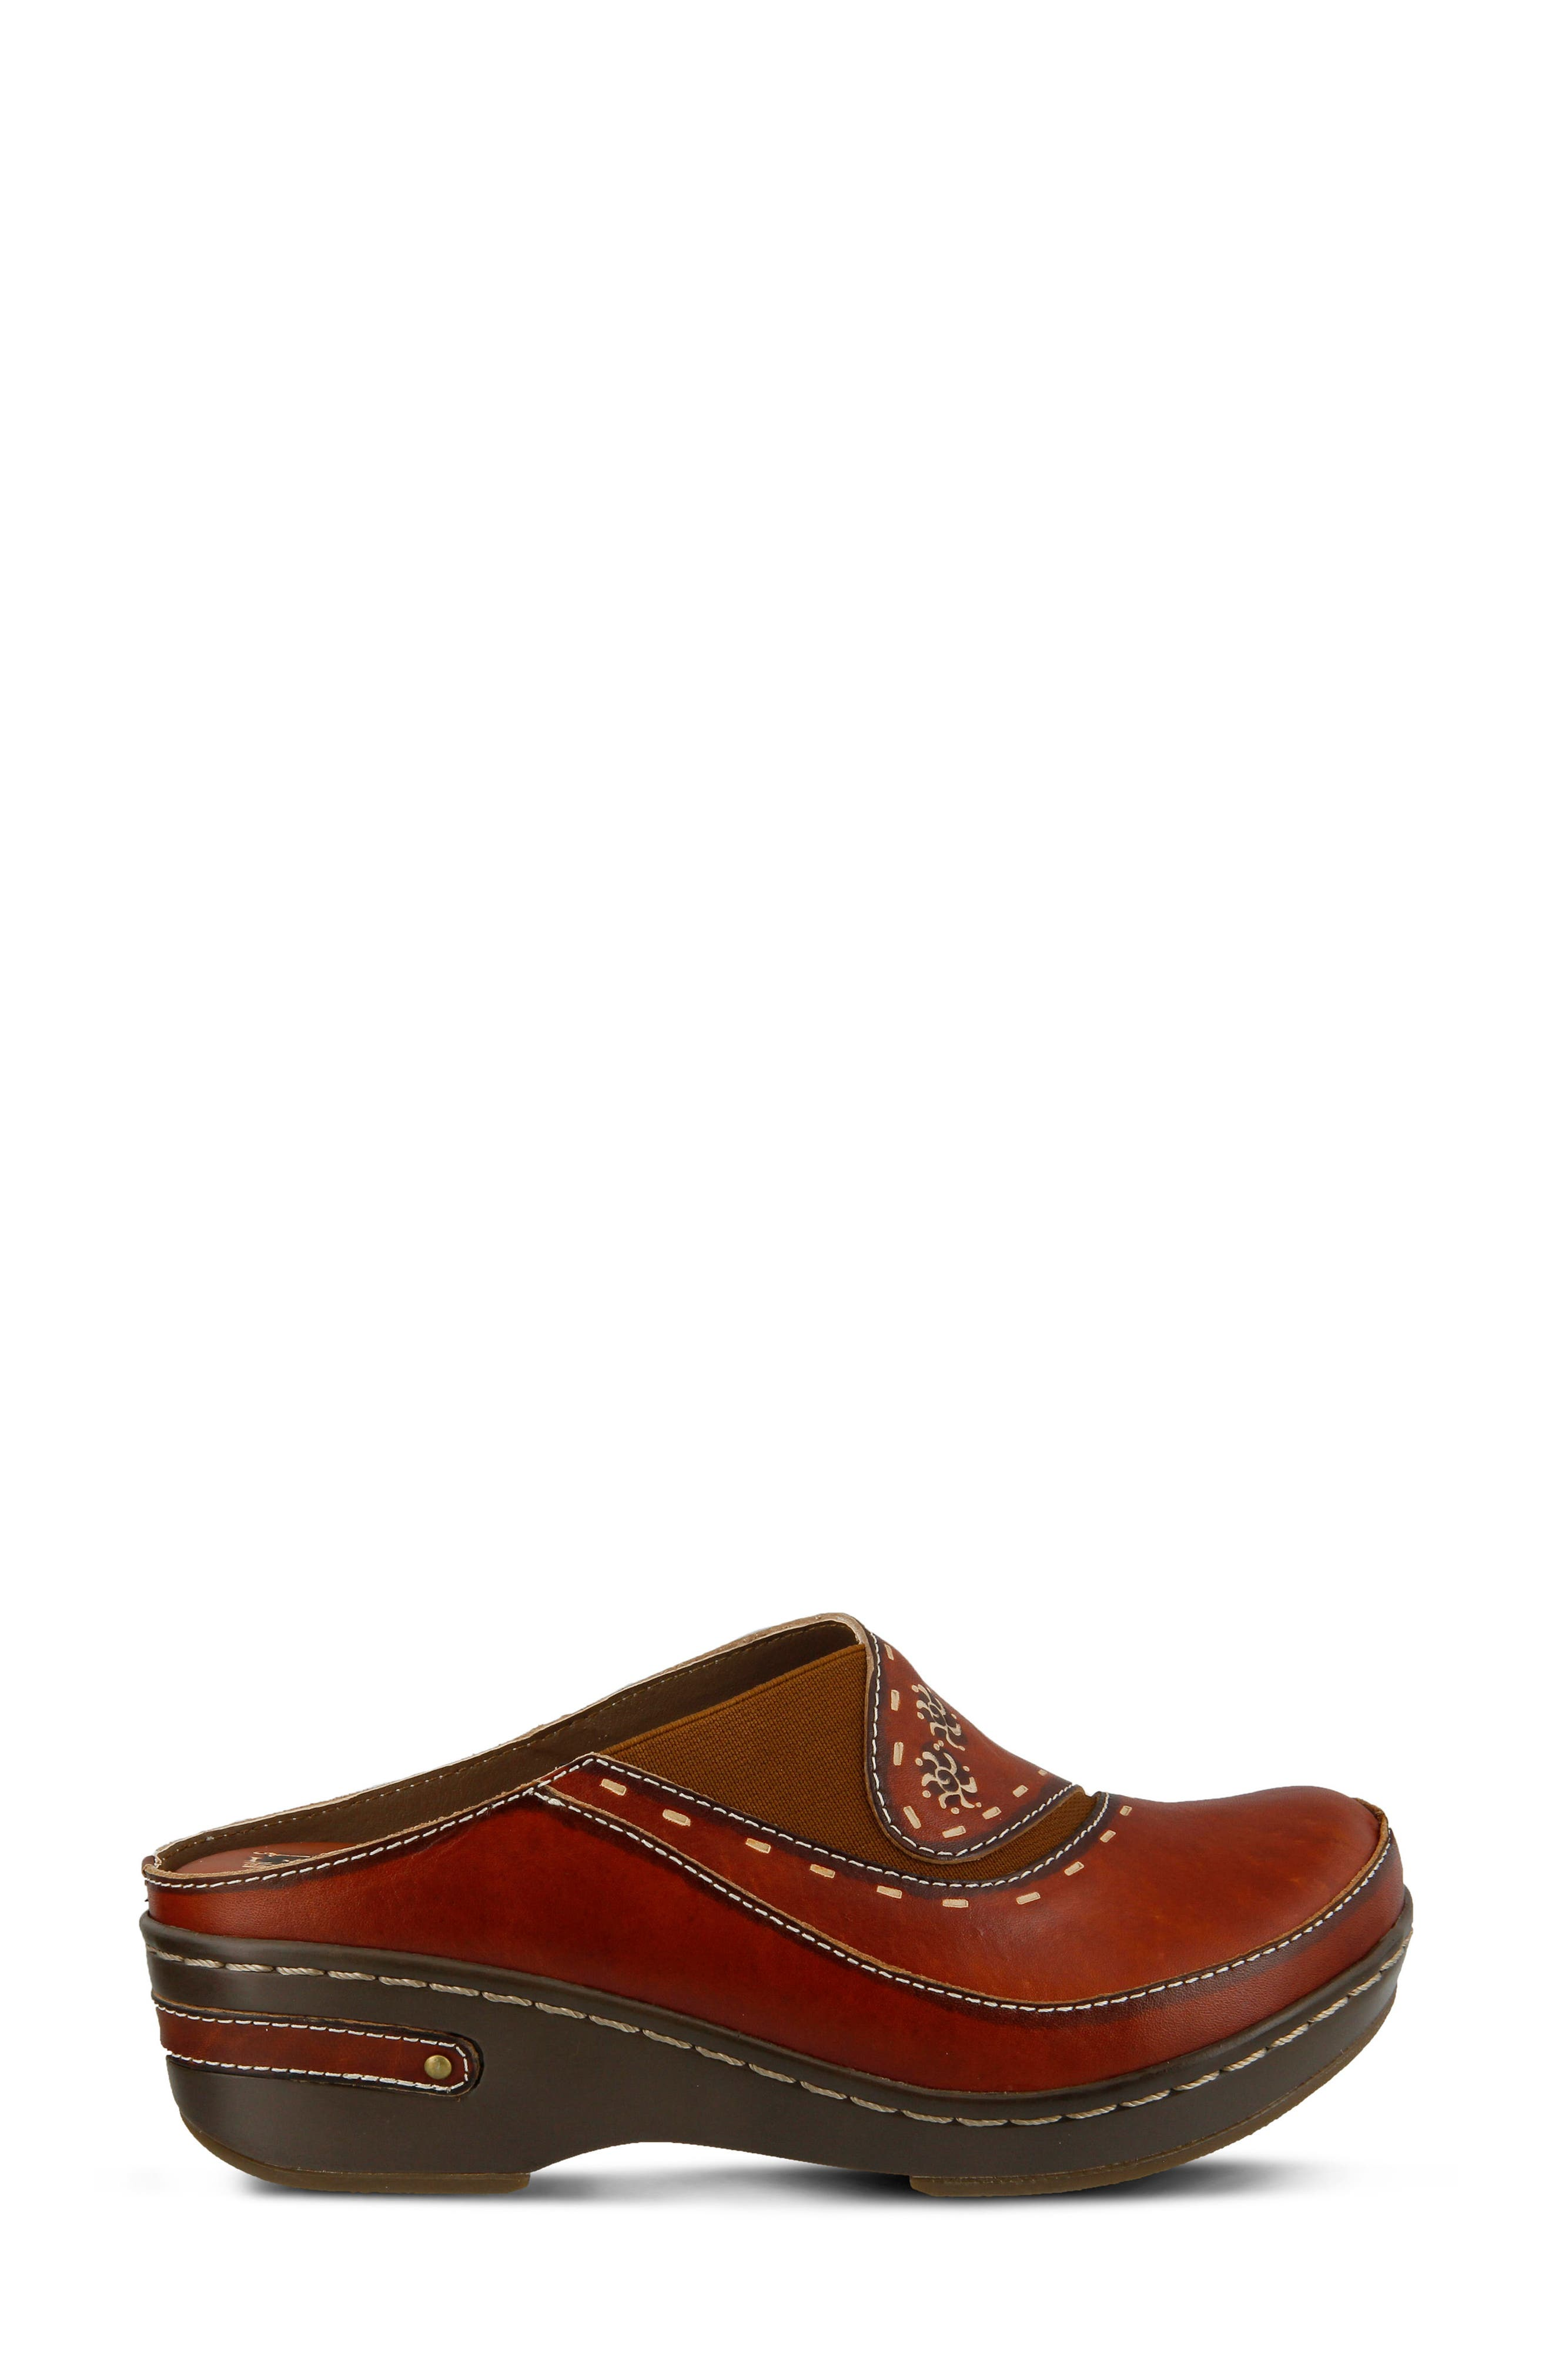 L'Artiste Chino Clog,                             Alternate thumbnail 3, color,                             Camel Leather